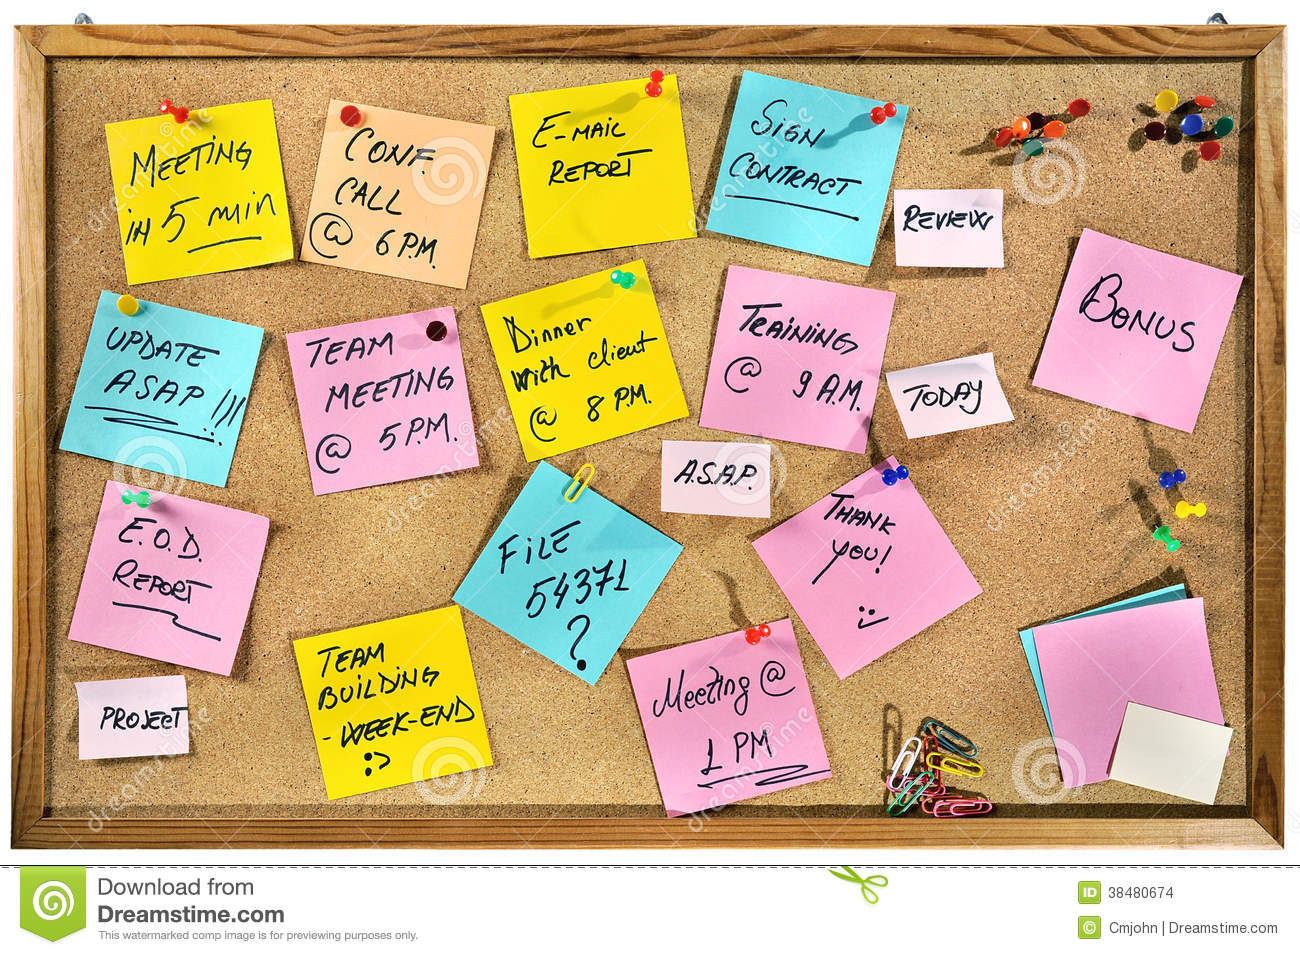 Great Download Corporate Words Written On Paper Notes On A Cork Message Board.  Stock Photo